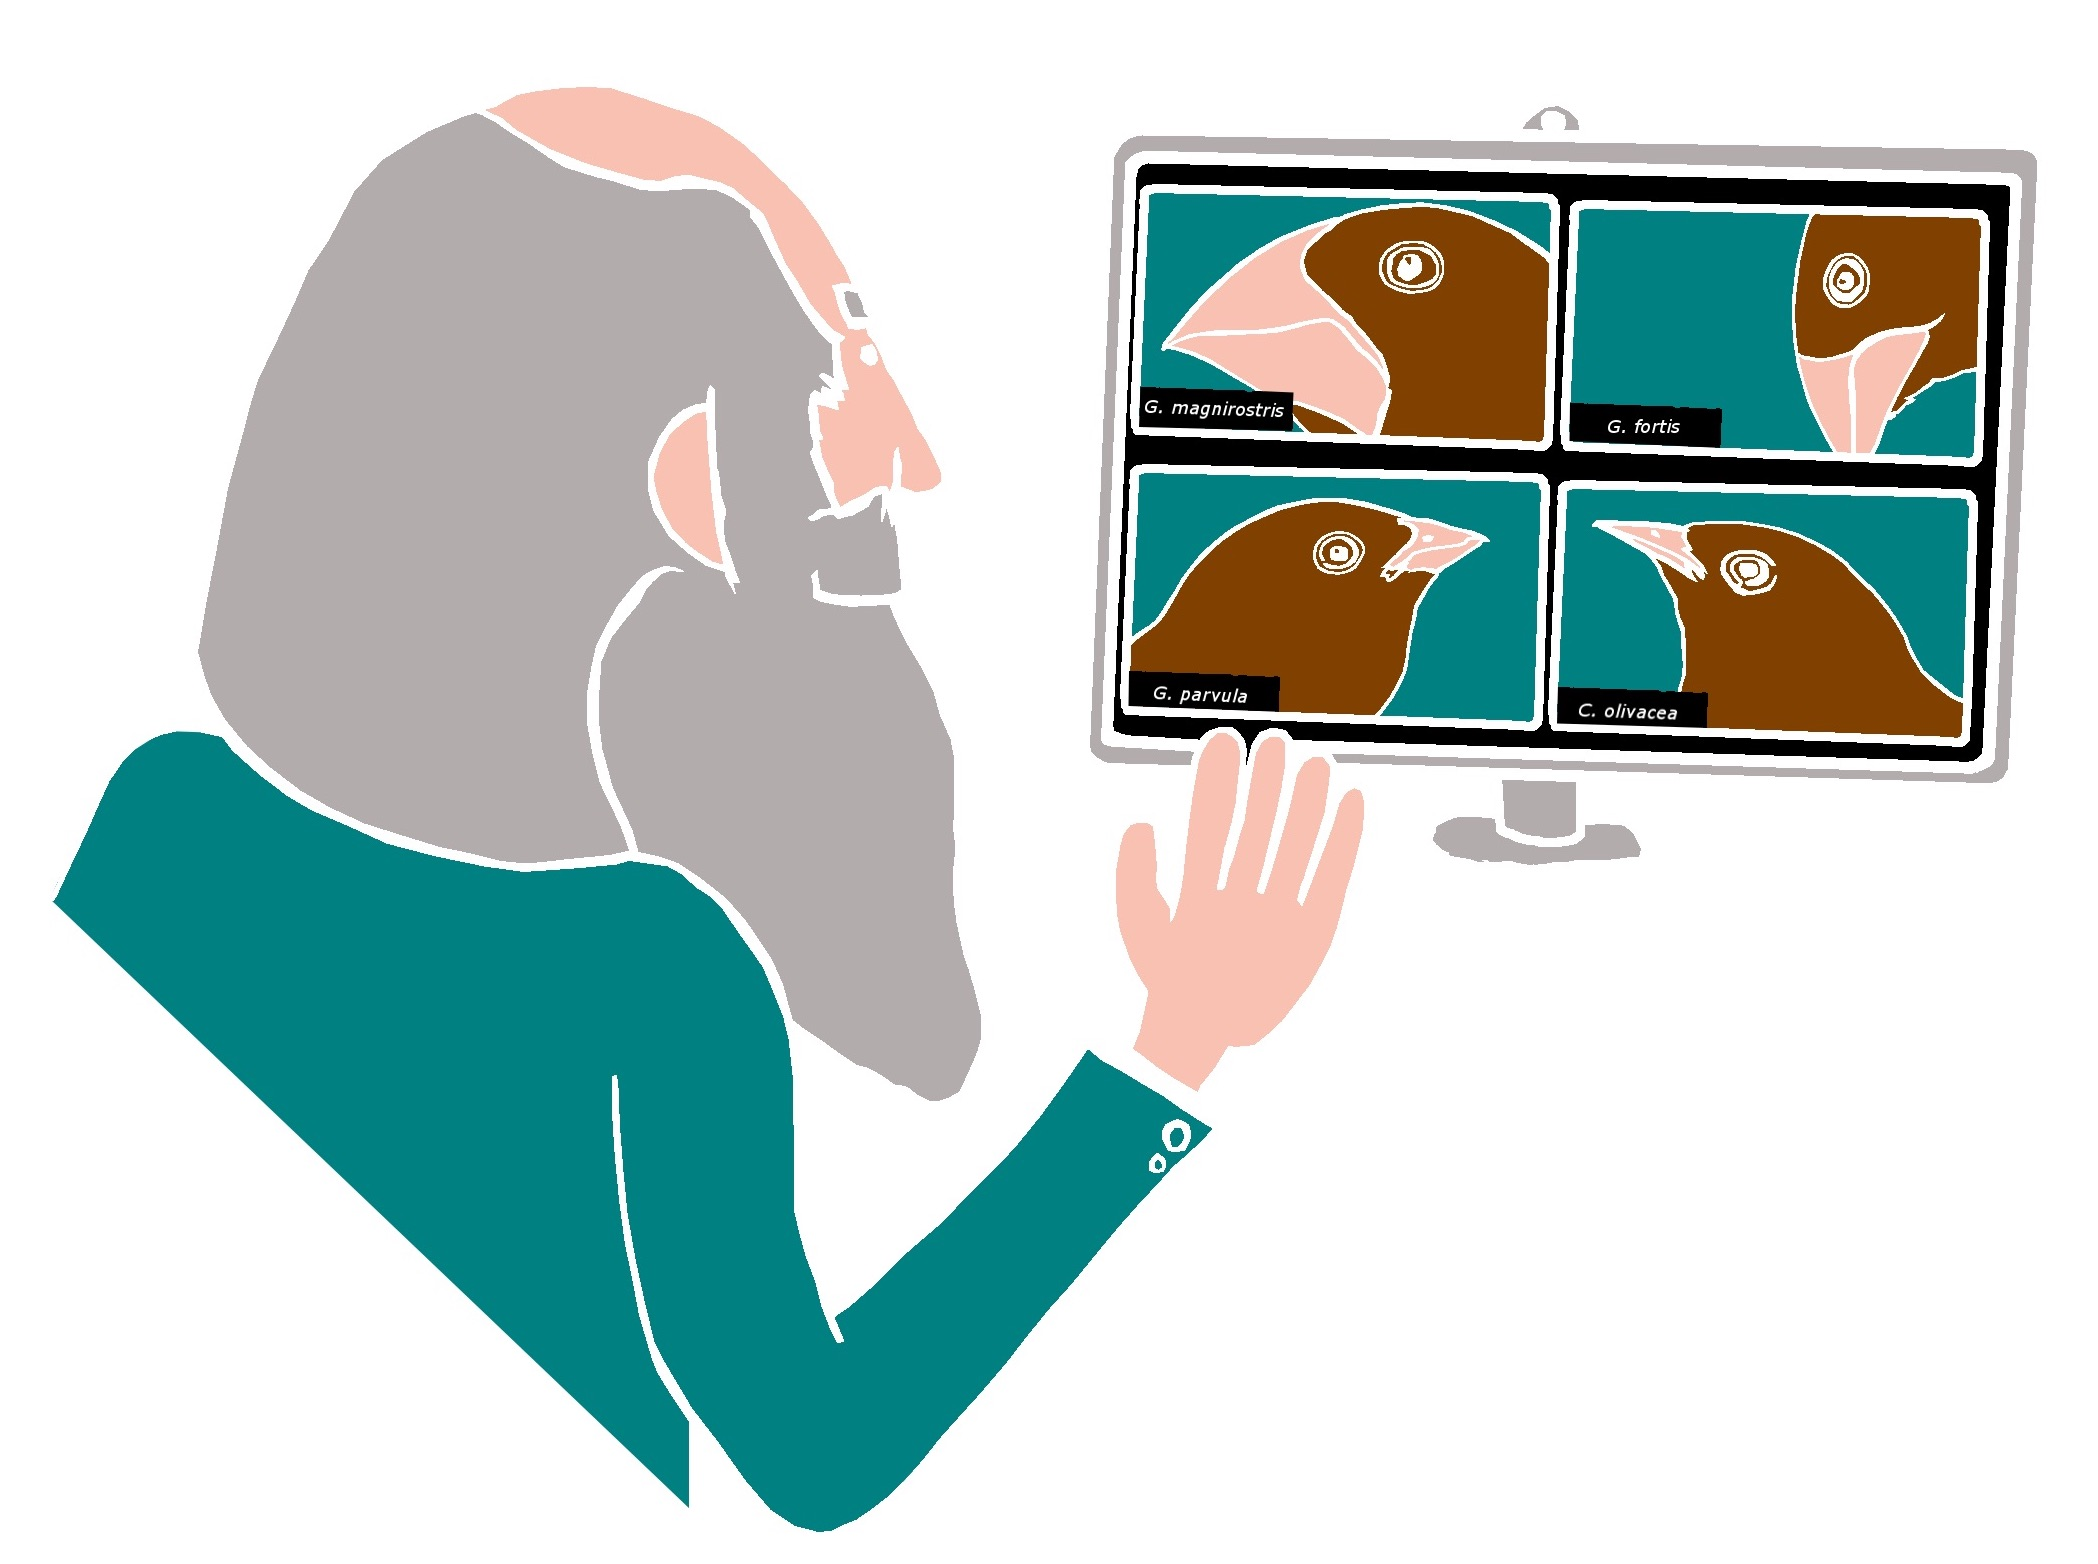 Cartoon drawing of Charles Darwin in front of a video conference call on computer screen